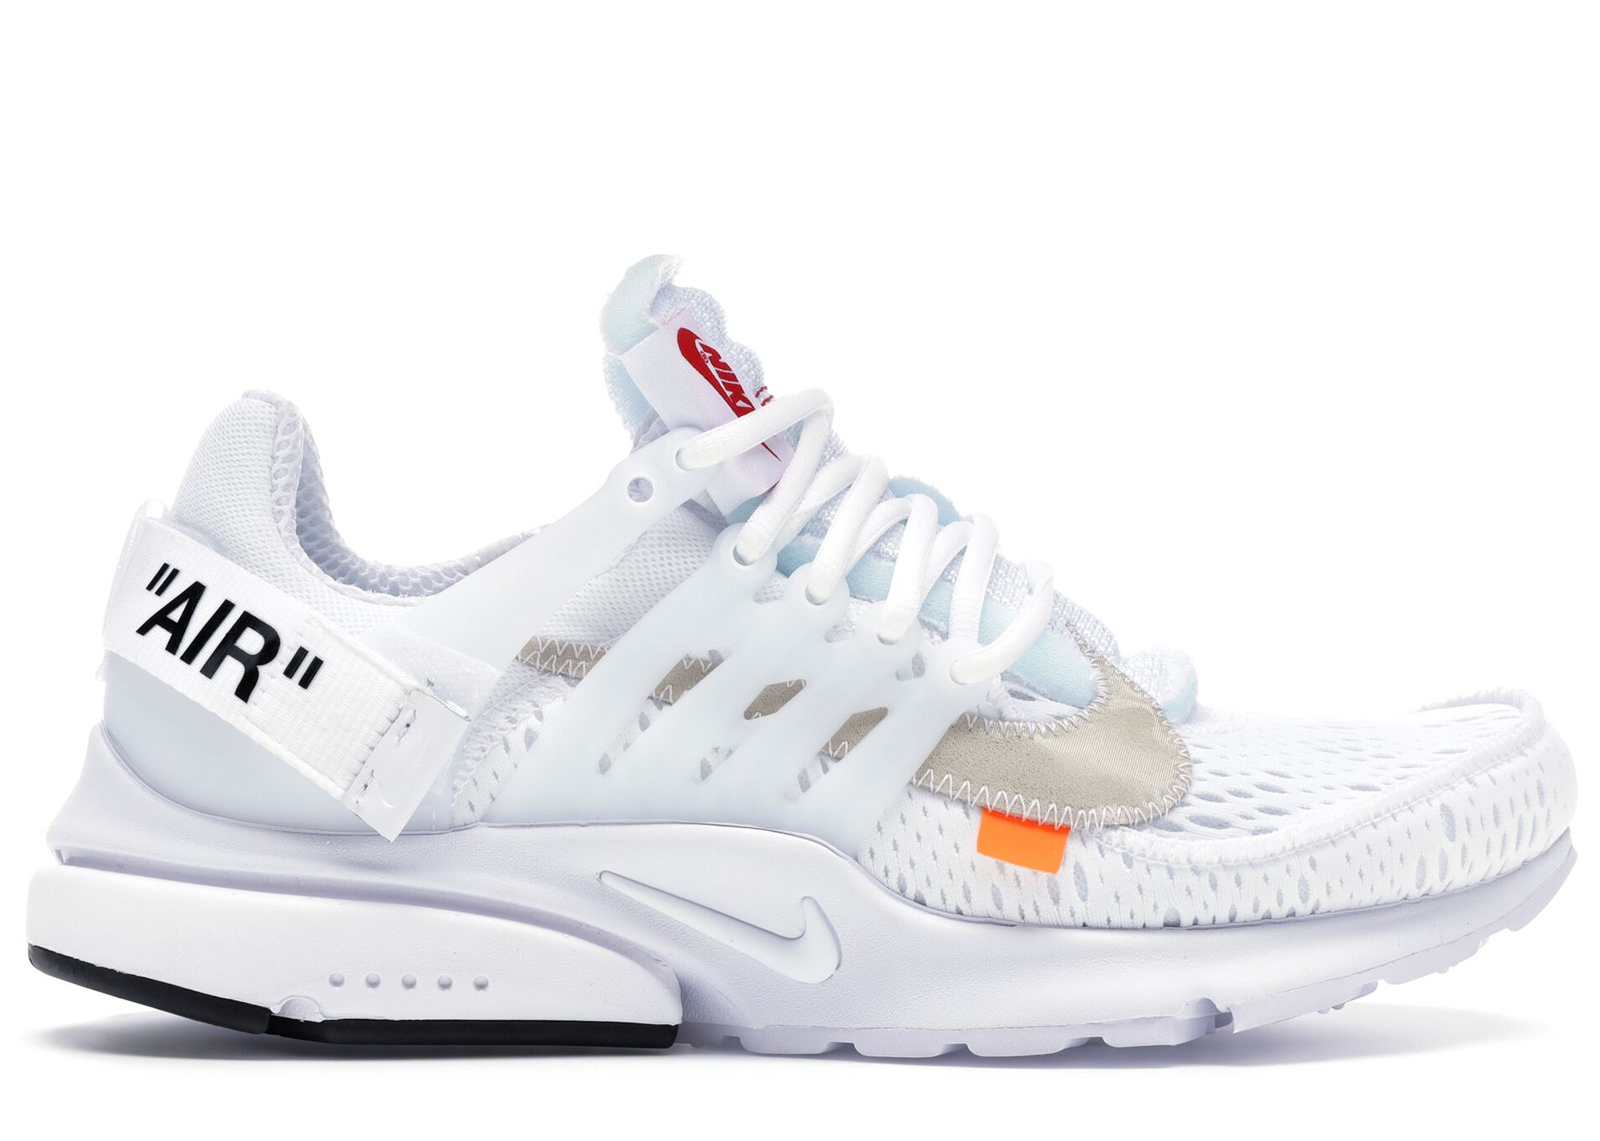 Air Presto Off-White White (2018) - AA3830-100